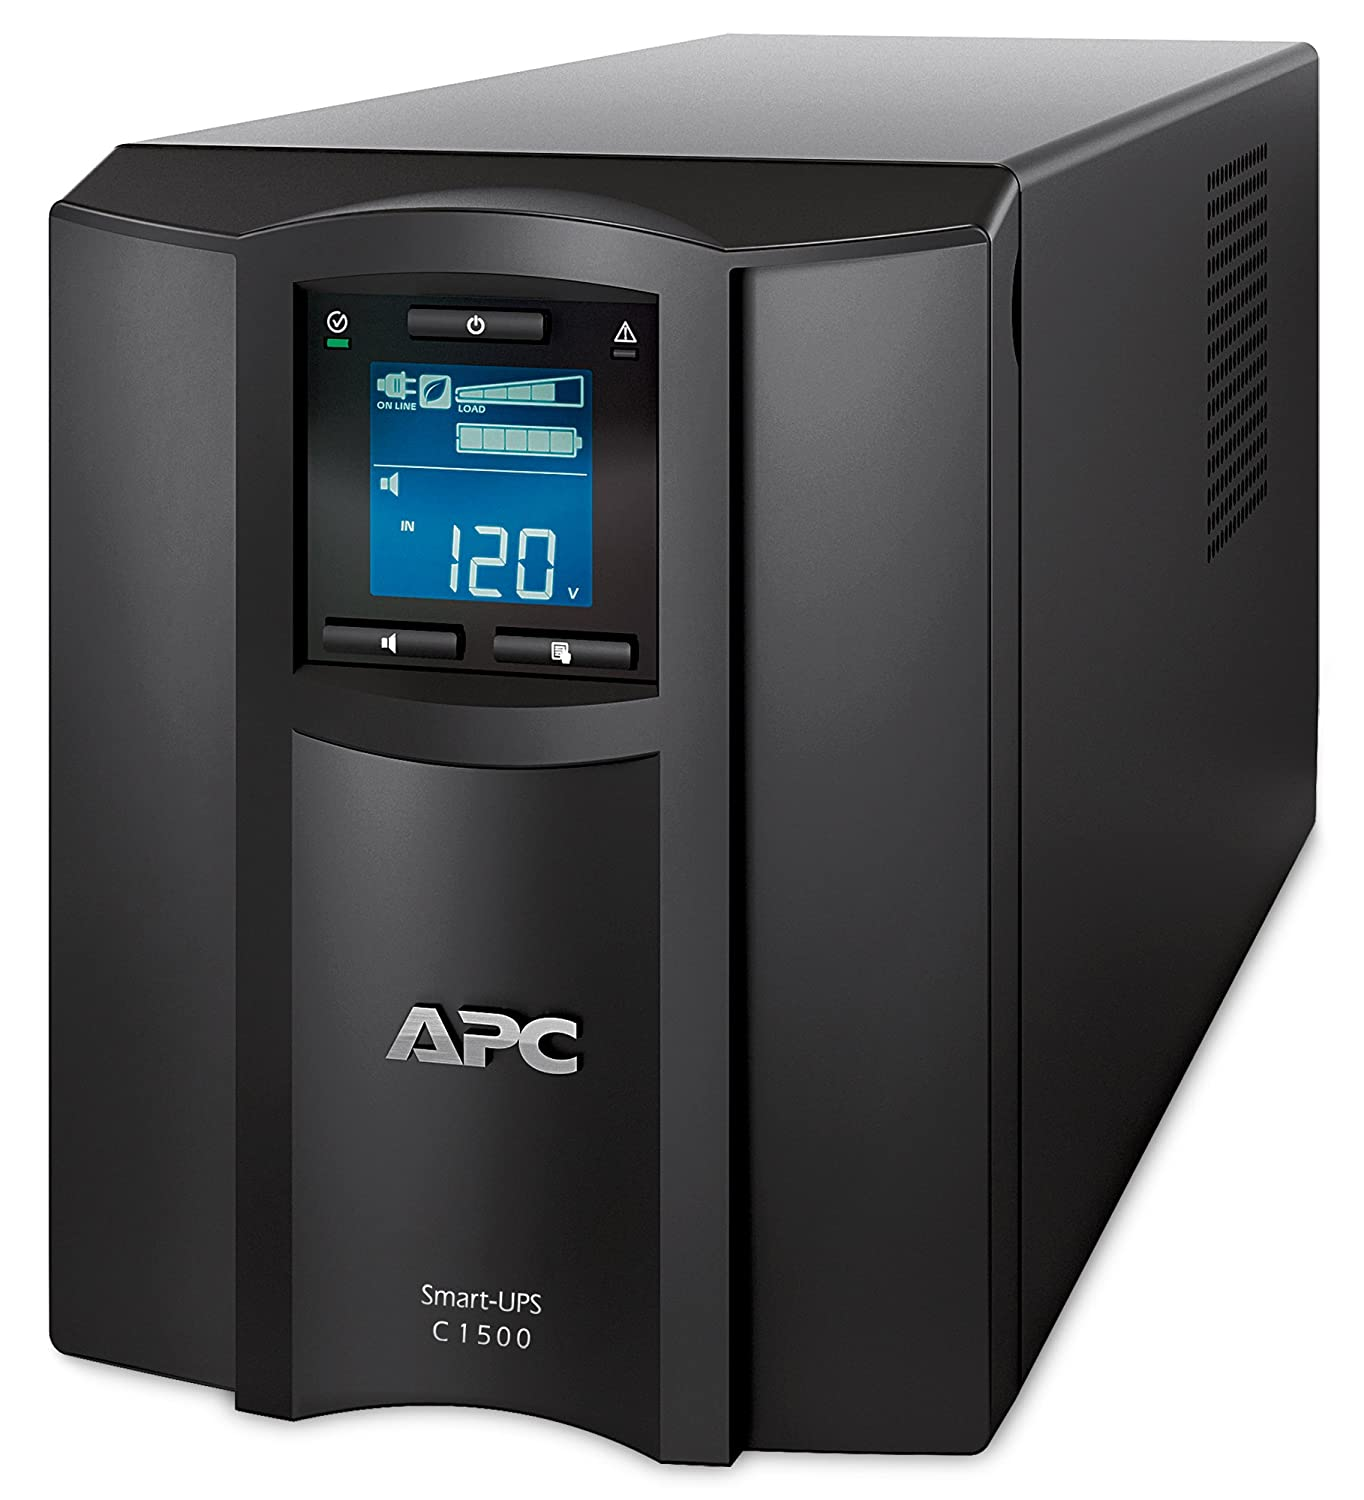 APC UPS 1500VA Smart-UPS with SmartConnect, Pure Sinewave UPS Battery Backup, Line Interactive, 120V Uninterruptible Power Supply (SMC1500C)